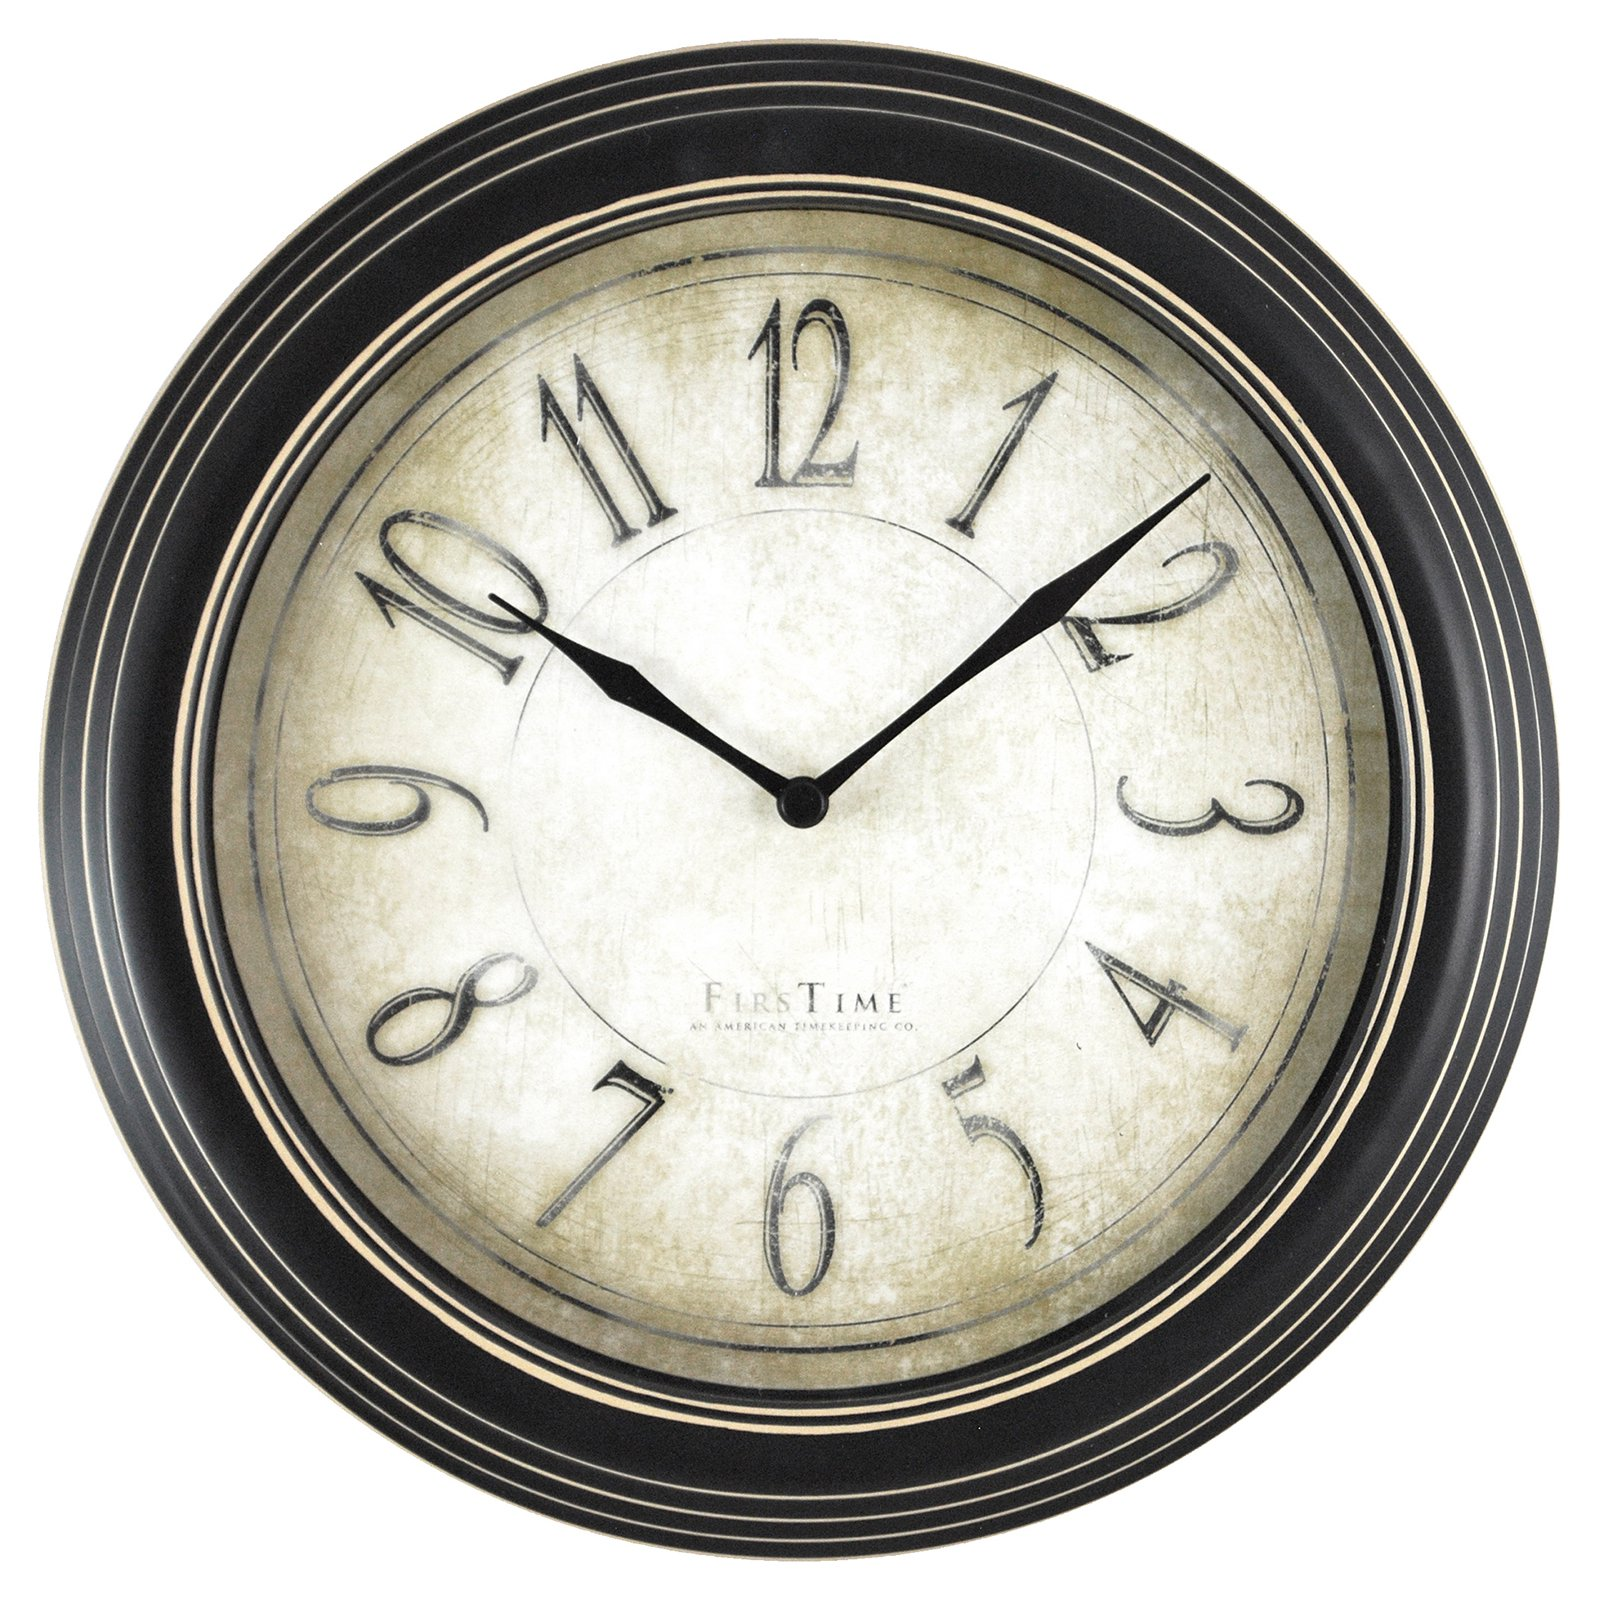 FirsTime Distressed Plastic Wall Clock